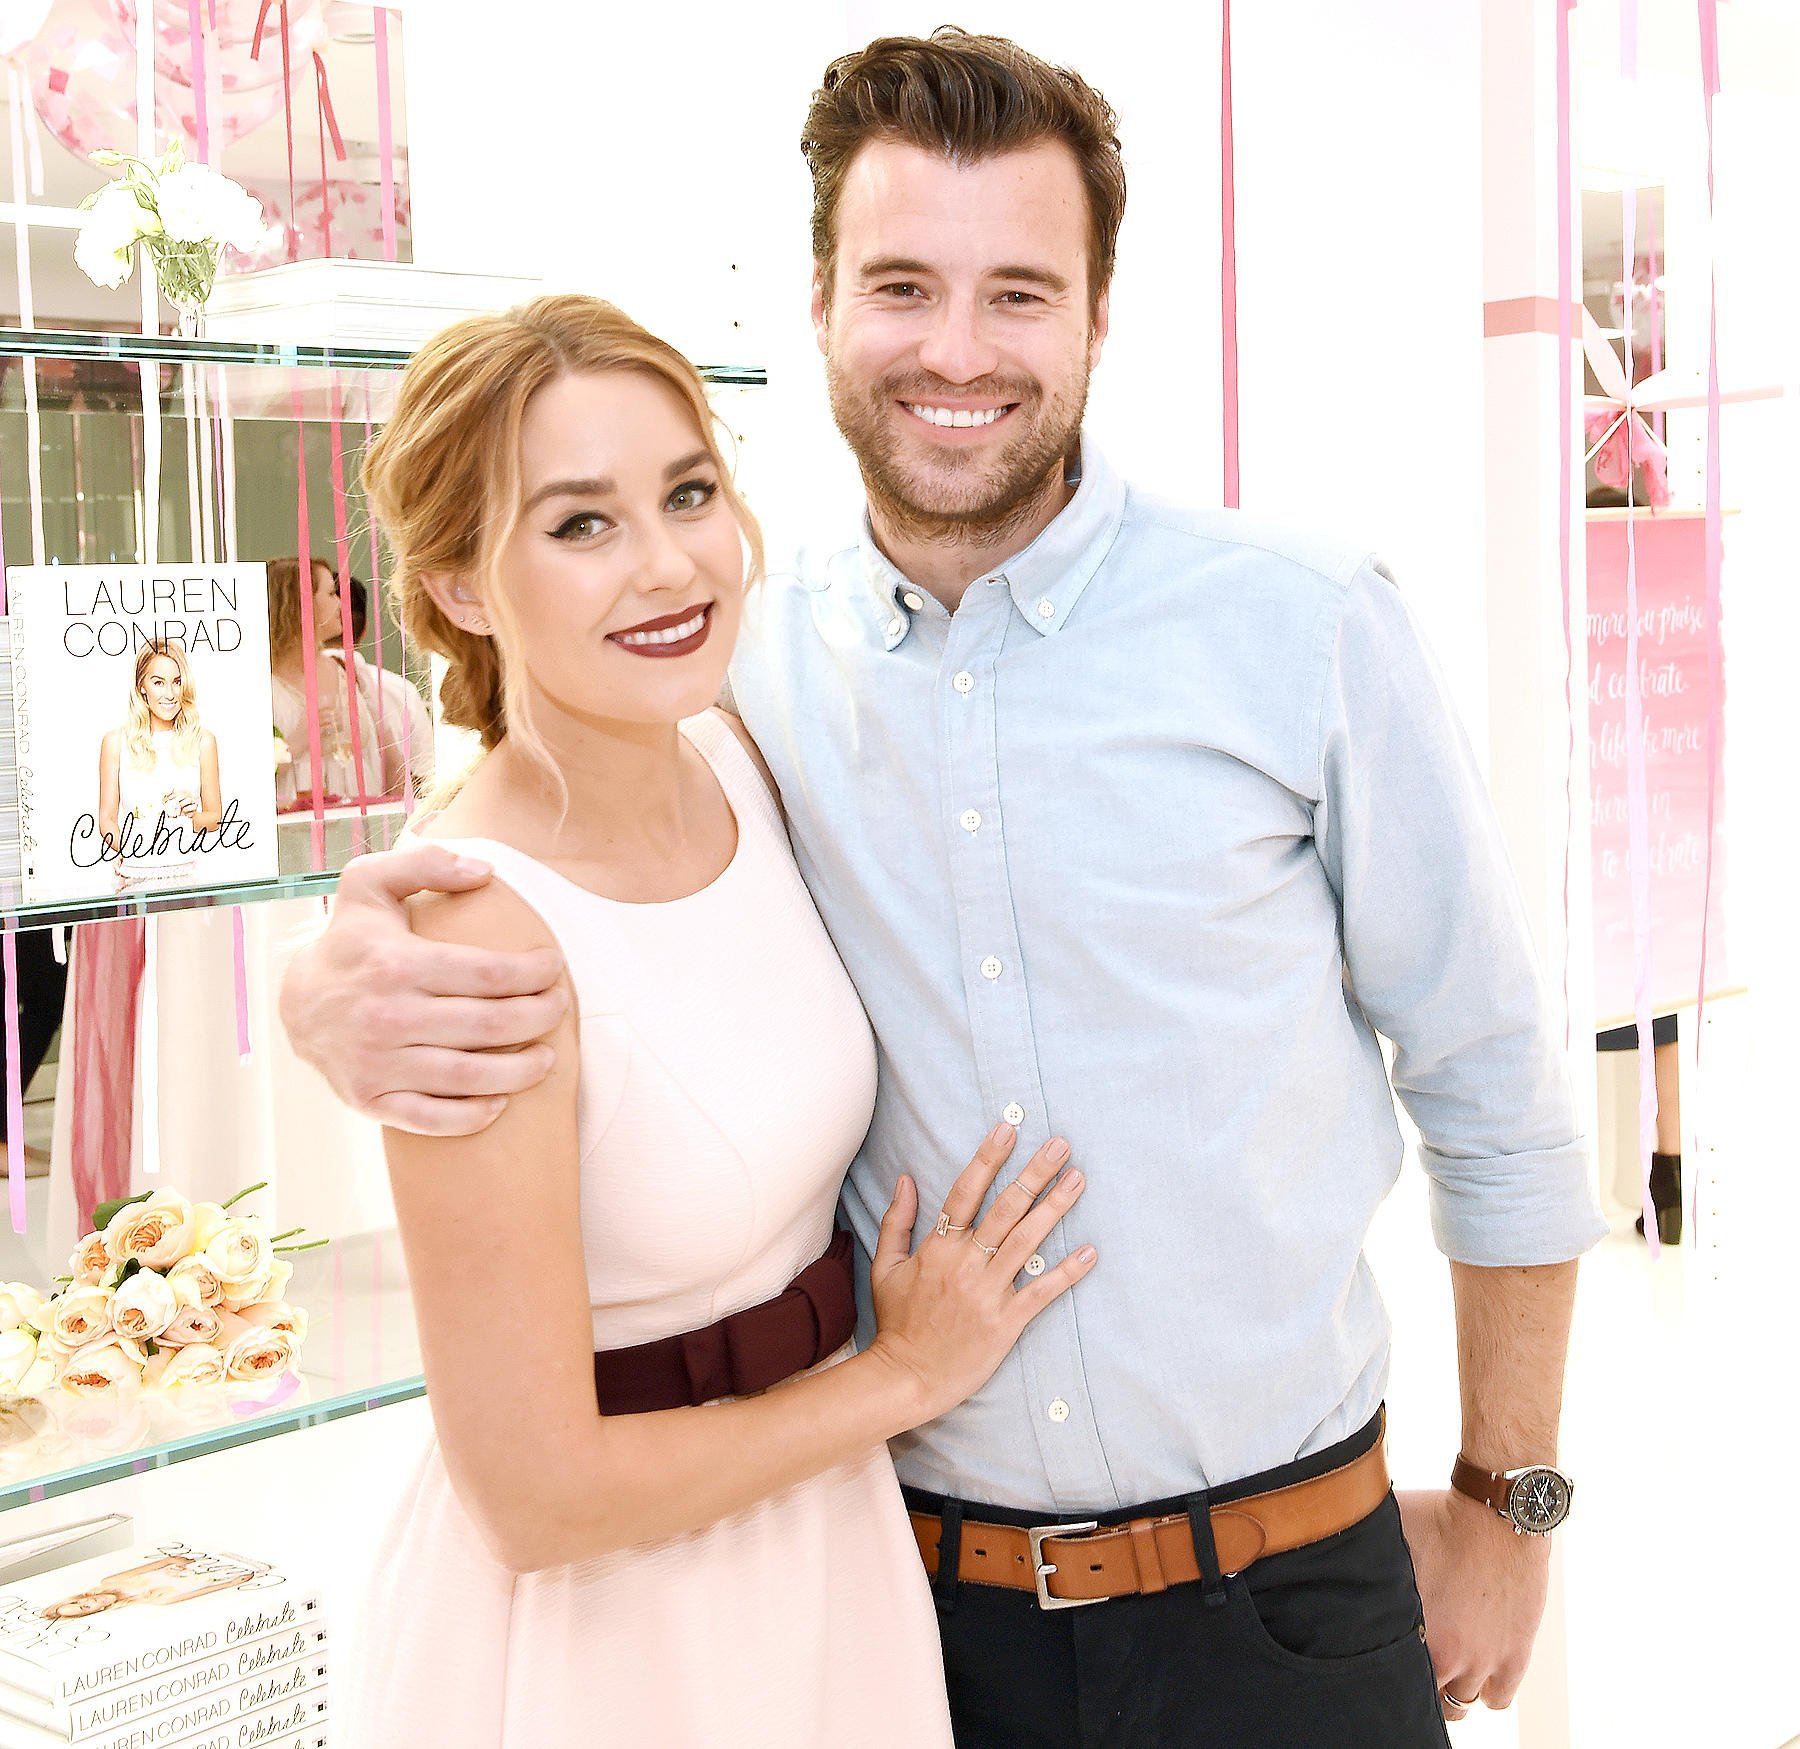 How long has lauren conrad and william tell been dating